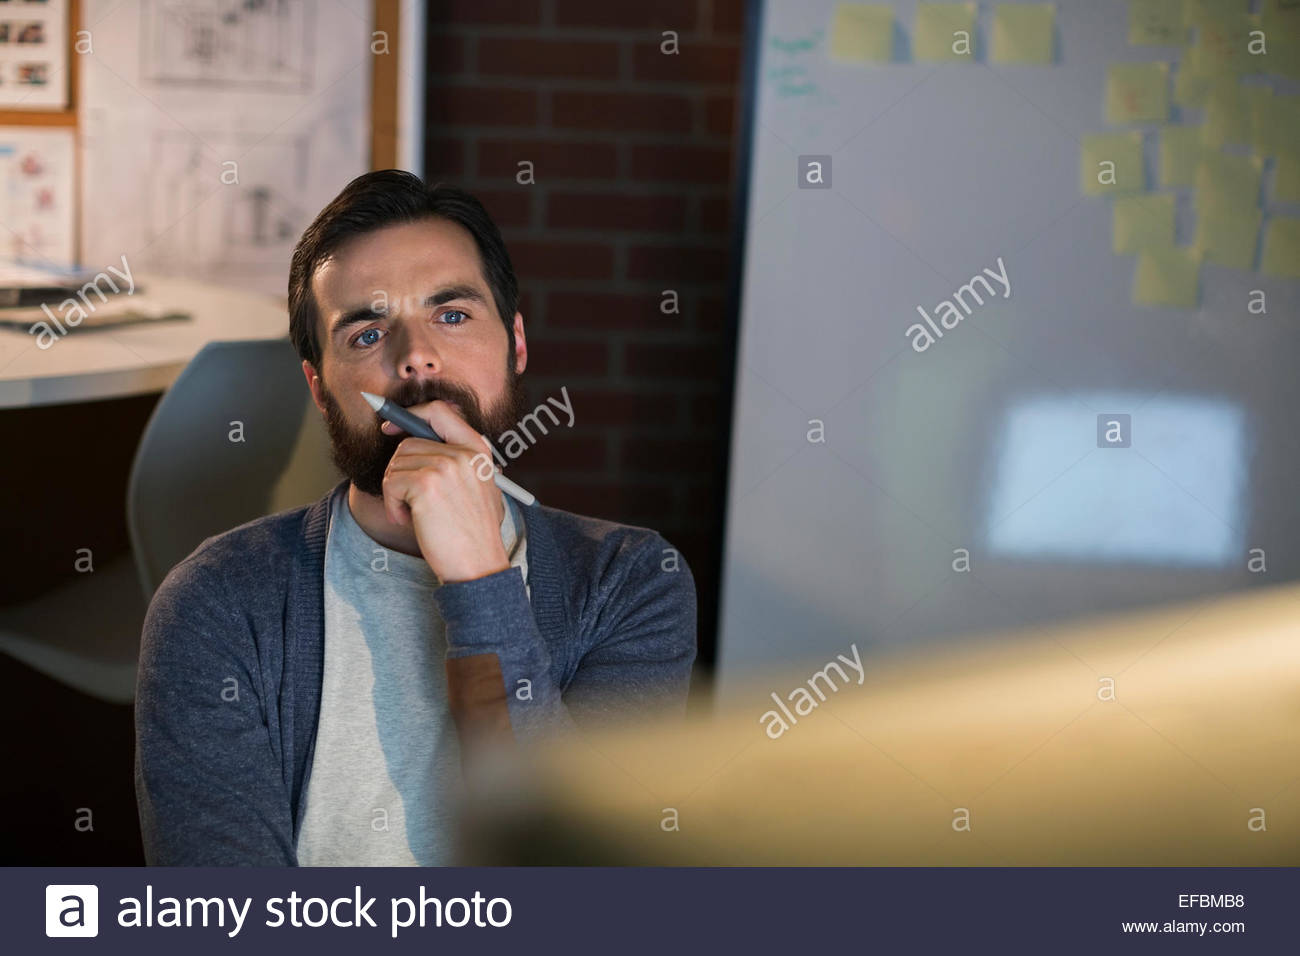 Serious designer working late at computer in office - Stock Image